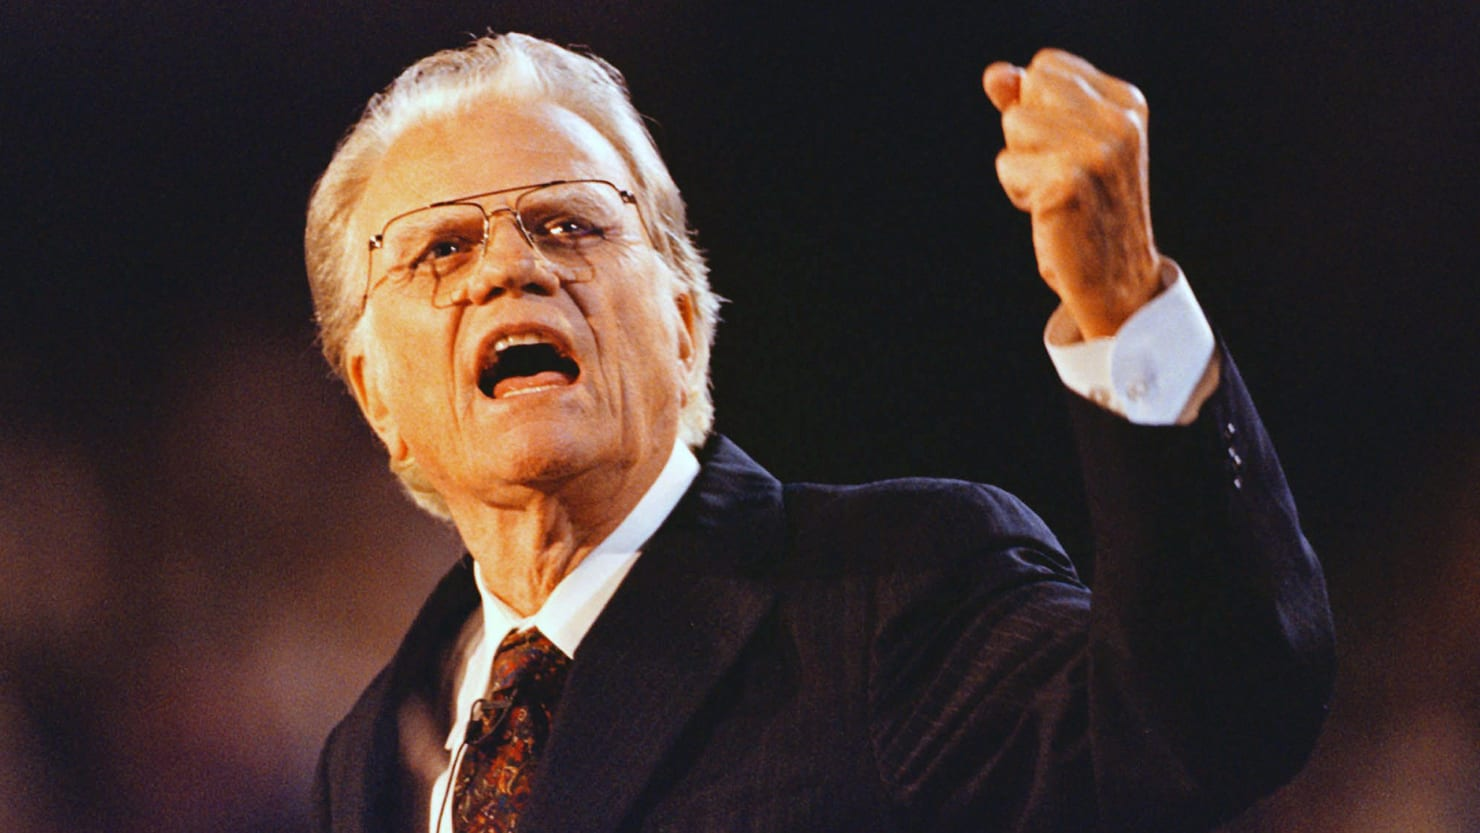 billy graham from civil rights to praying with presidents